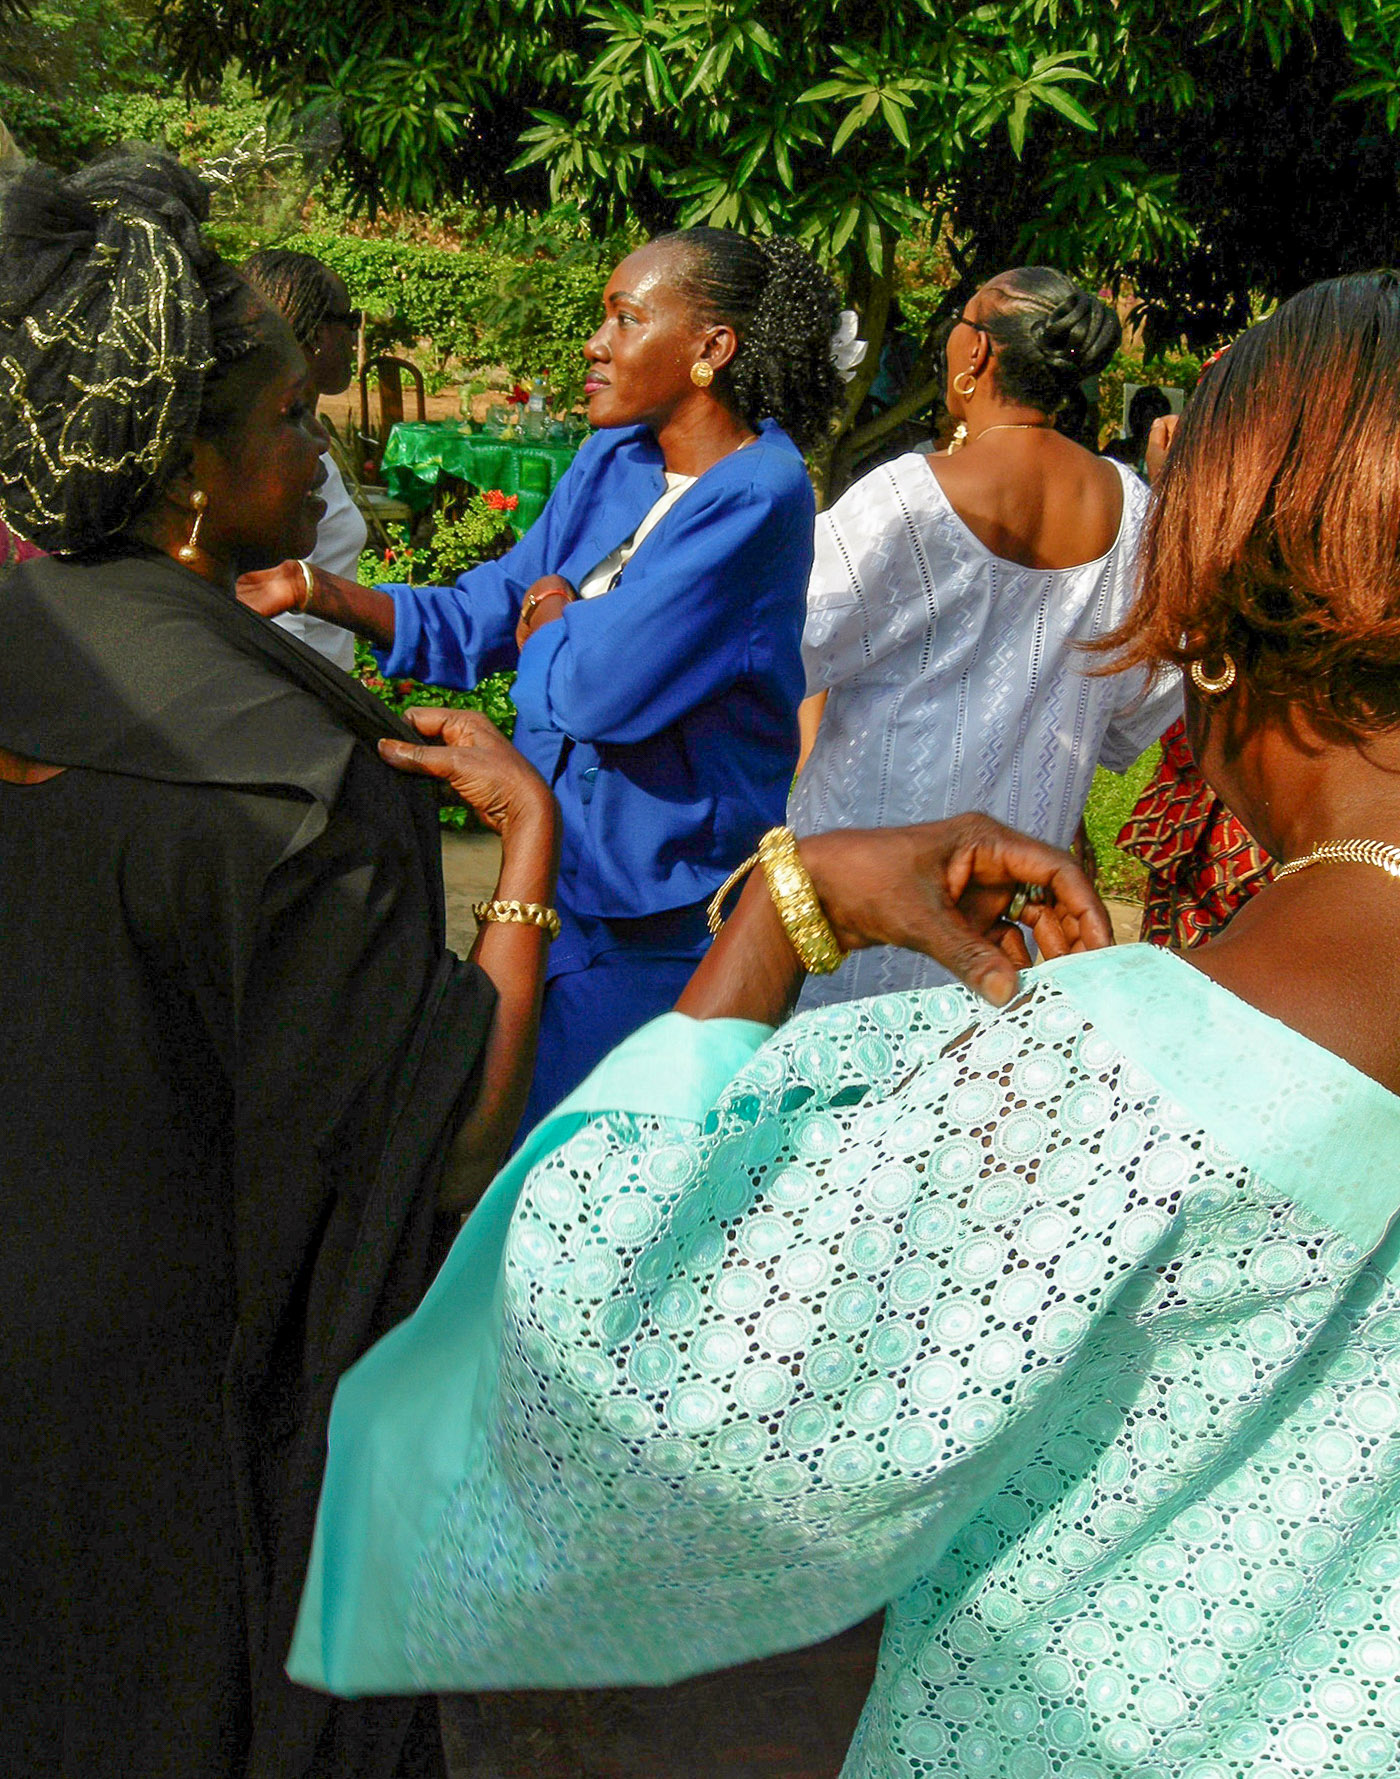 Garden Party, Dakar, Senegal, 2005